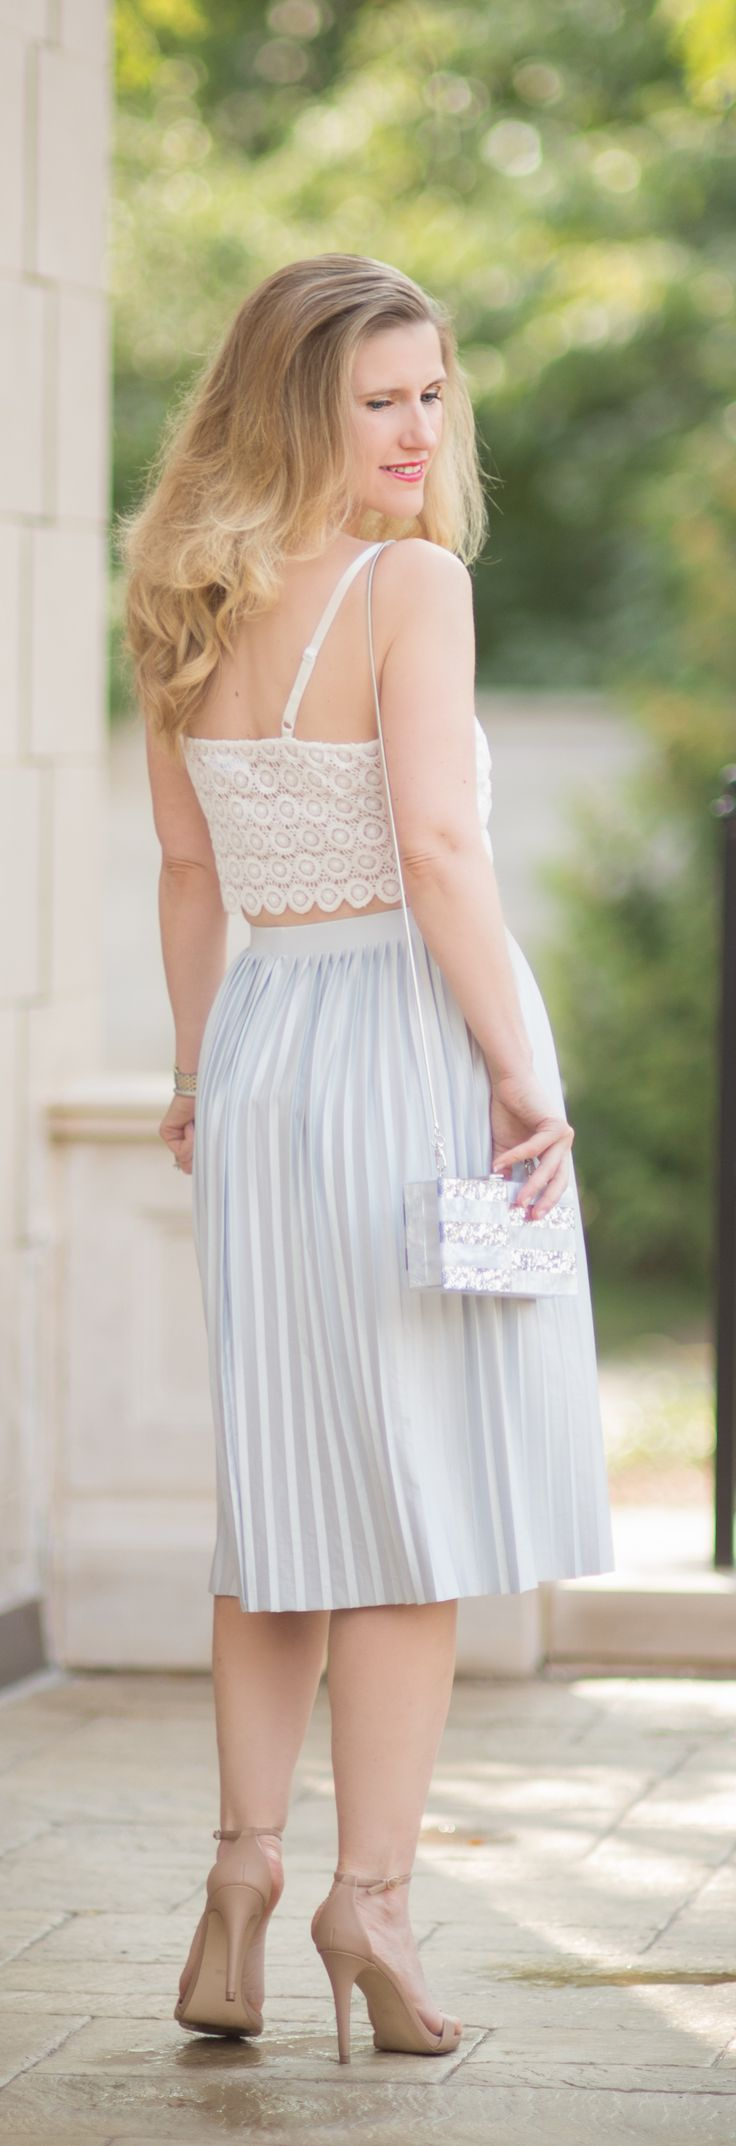 Petite Fashion and Style Blog   Fashion over 40   Misguided Circle Lace Crop Top   Topshop Pleated Midi Skirt   Milly Acrylic & Glitter Box Clutch   Click to Read More...